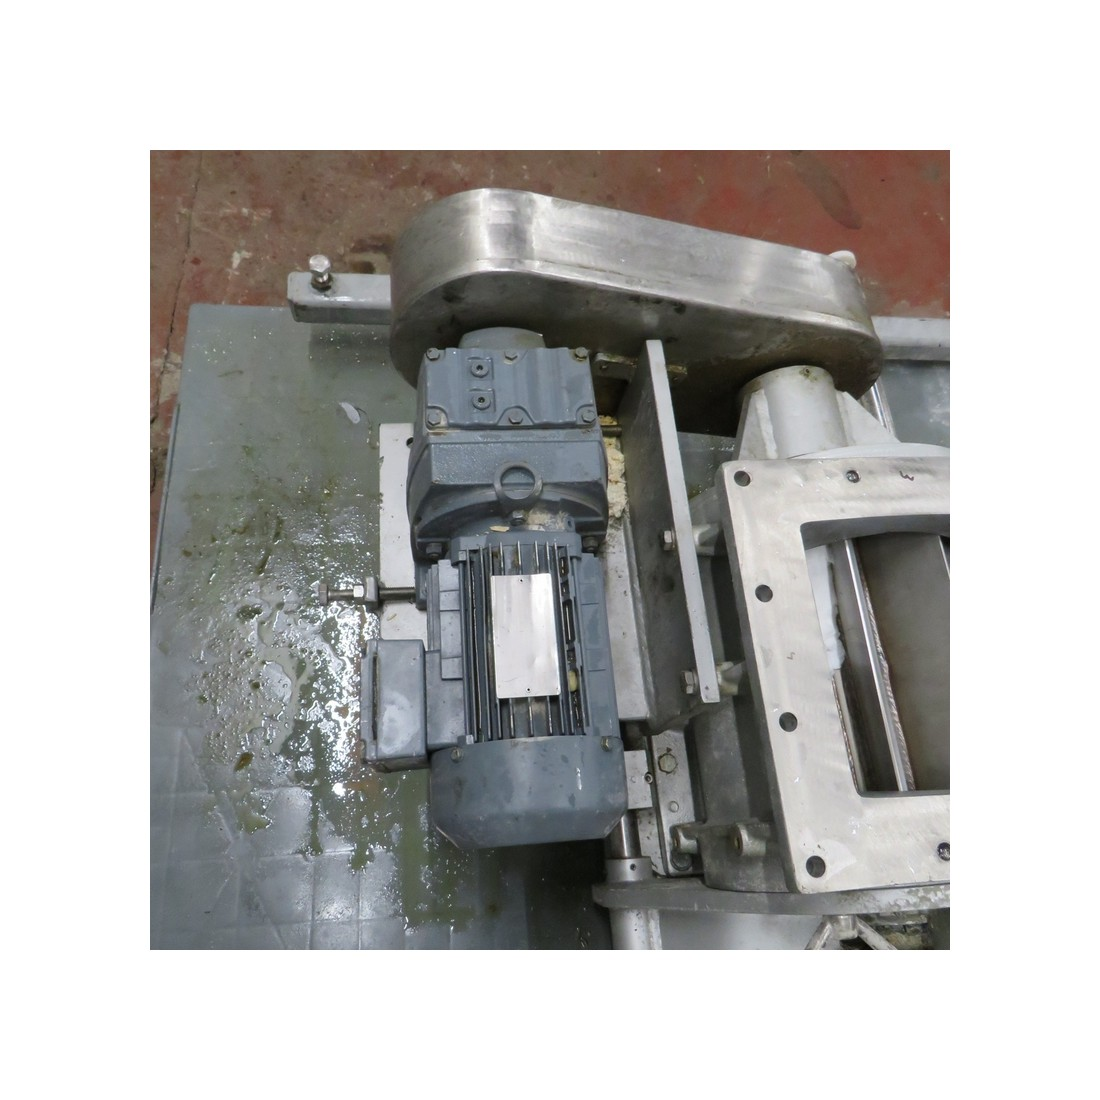 R6P824 - Stainless steel Rotary valve ACETT - opening : 195 x 200 mm